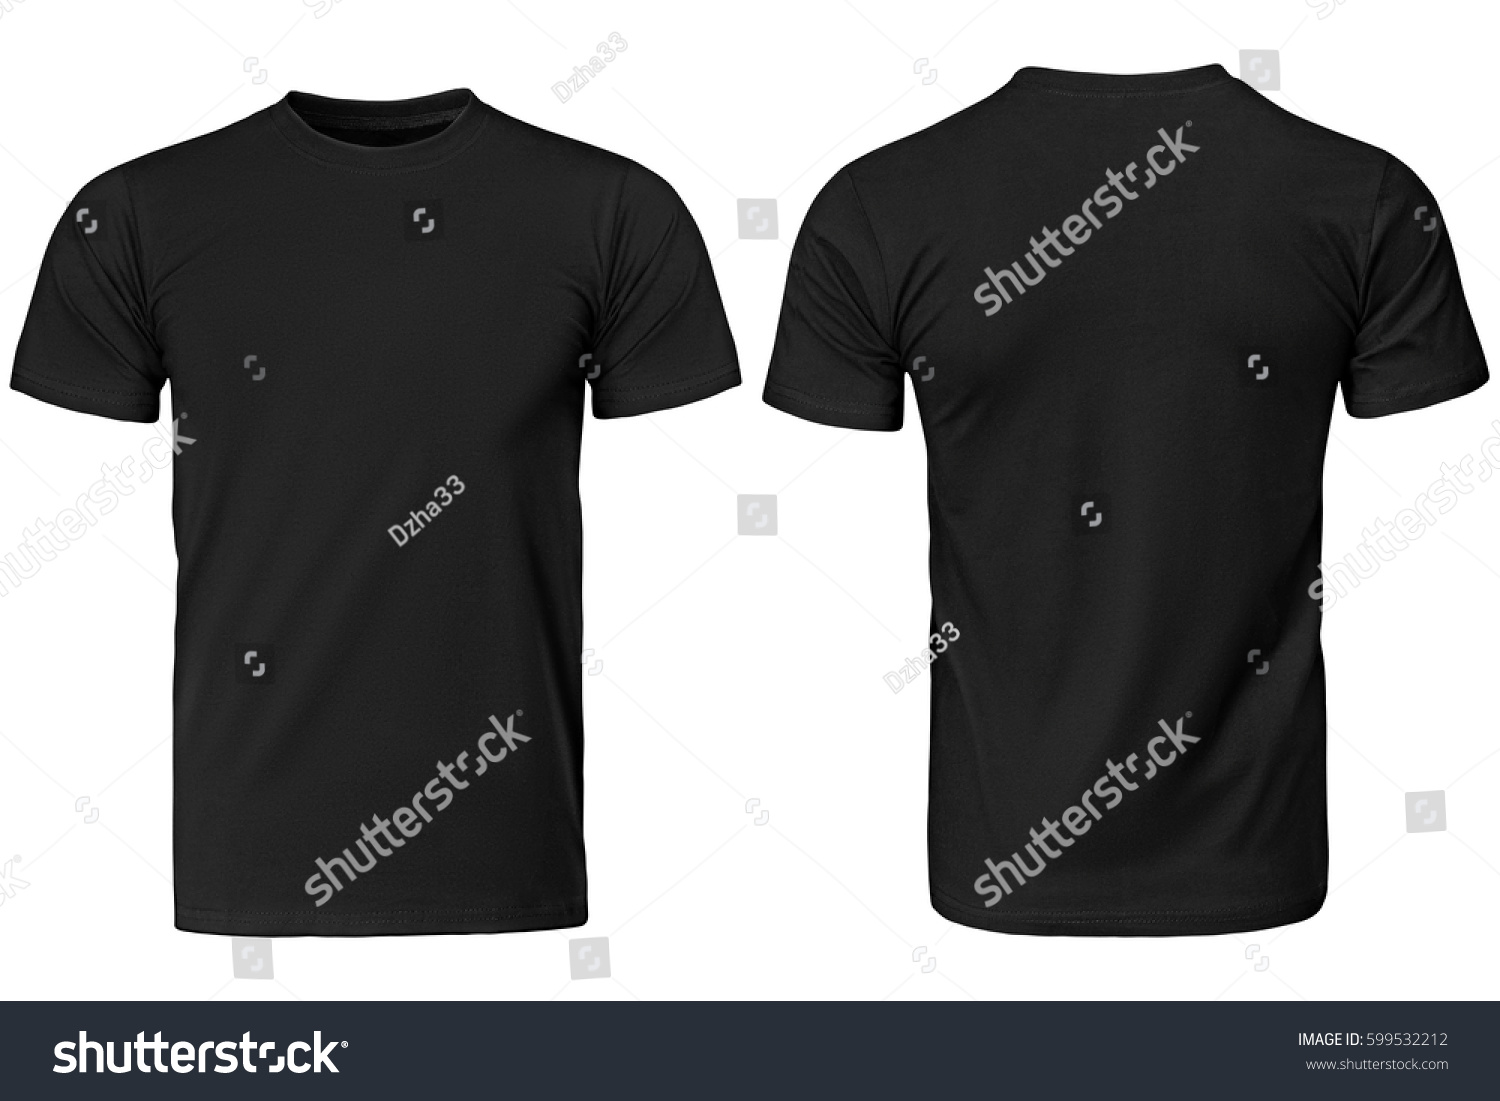 Black t-shirt, clothes on isolated white background #599532212 - 123PhotoFree.com